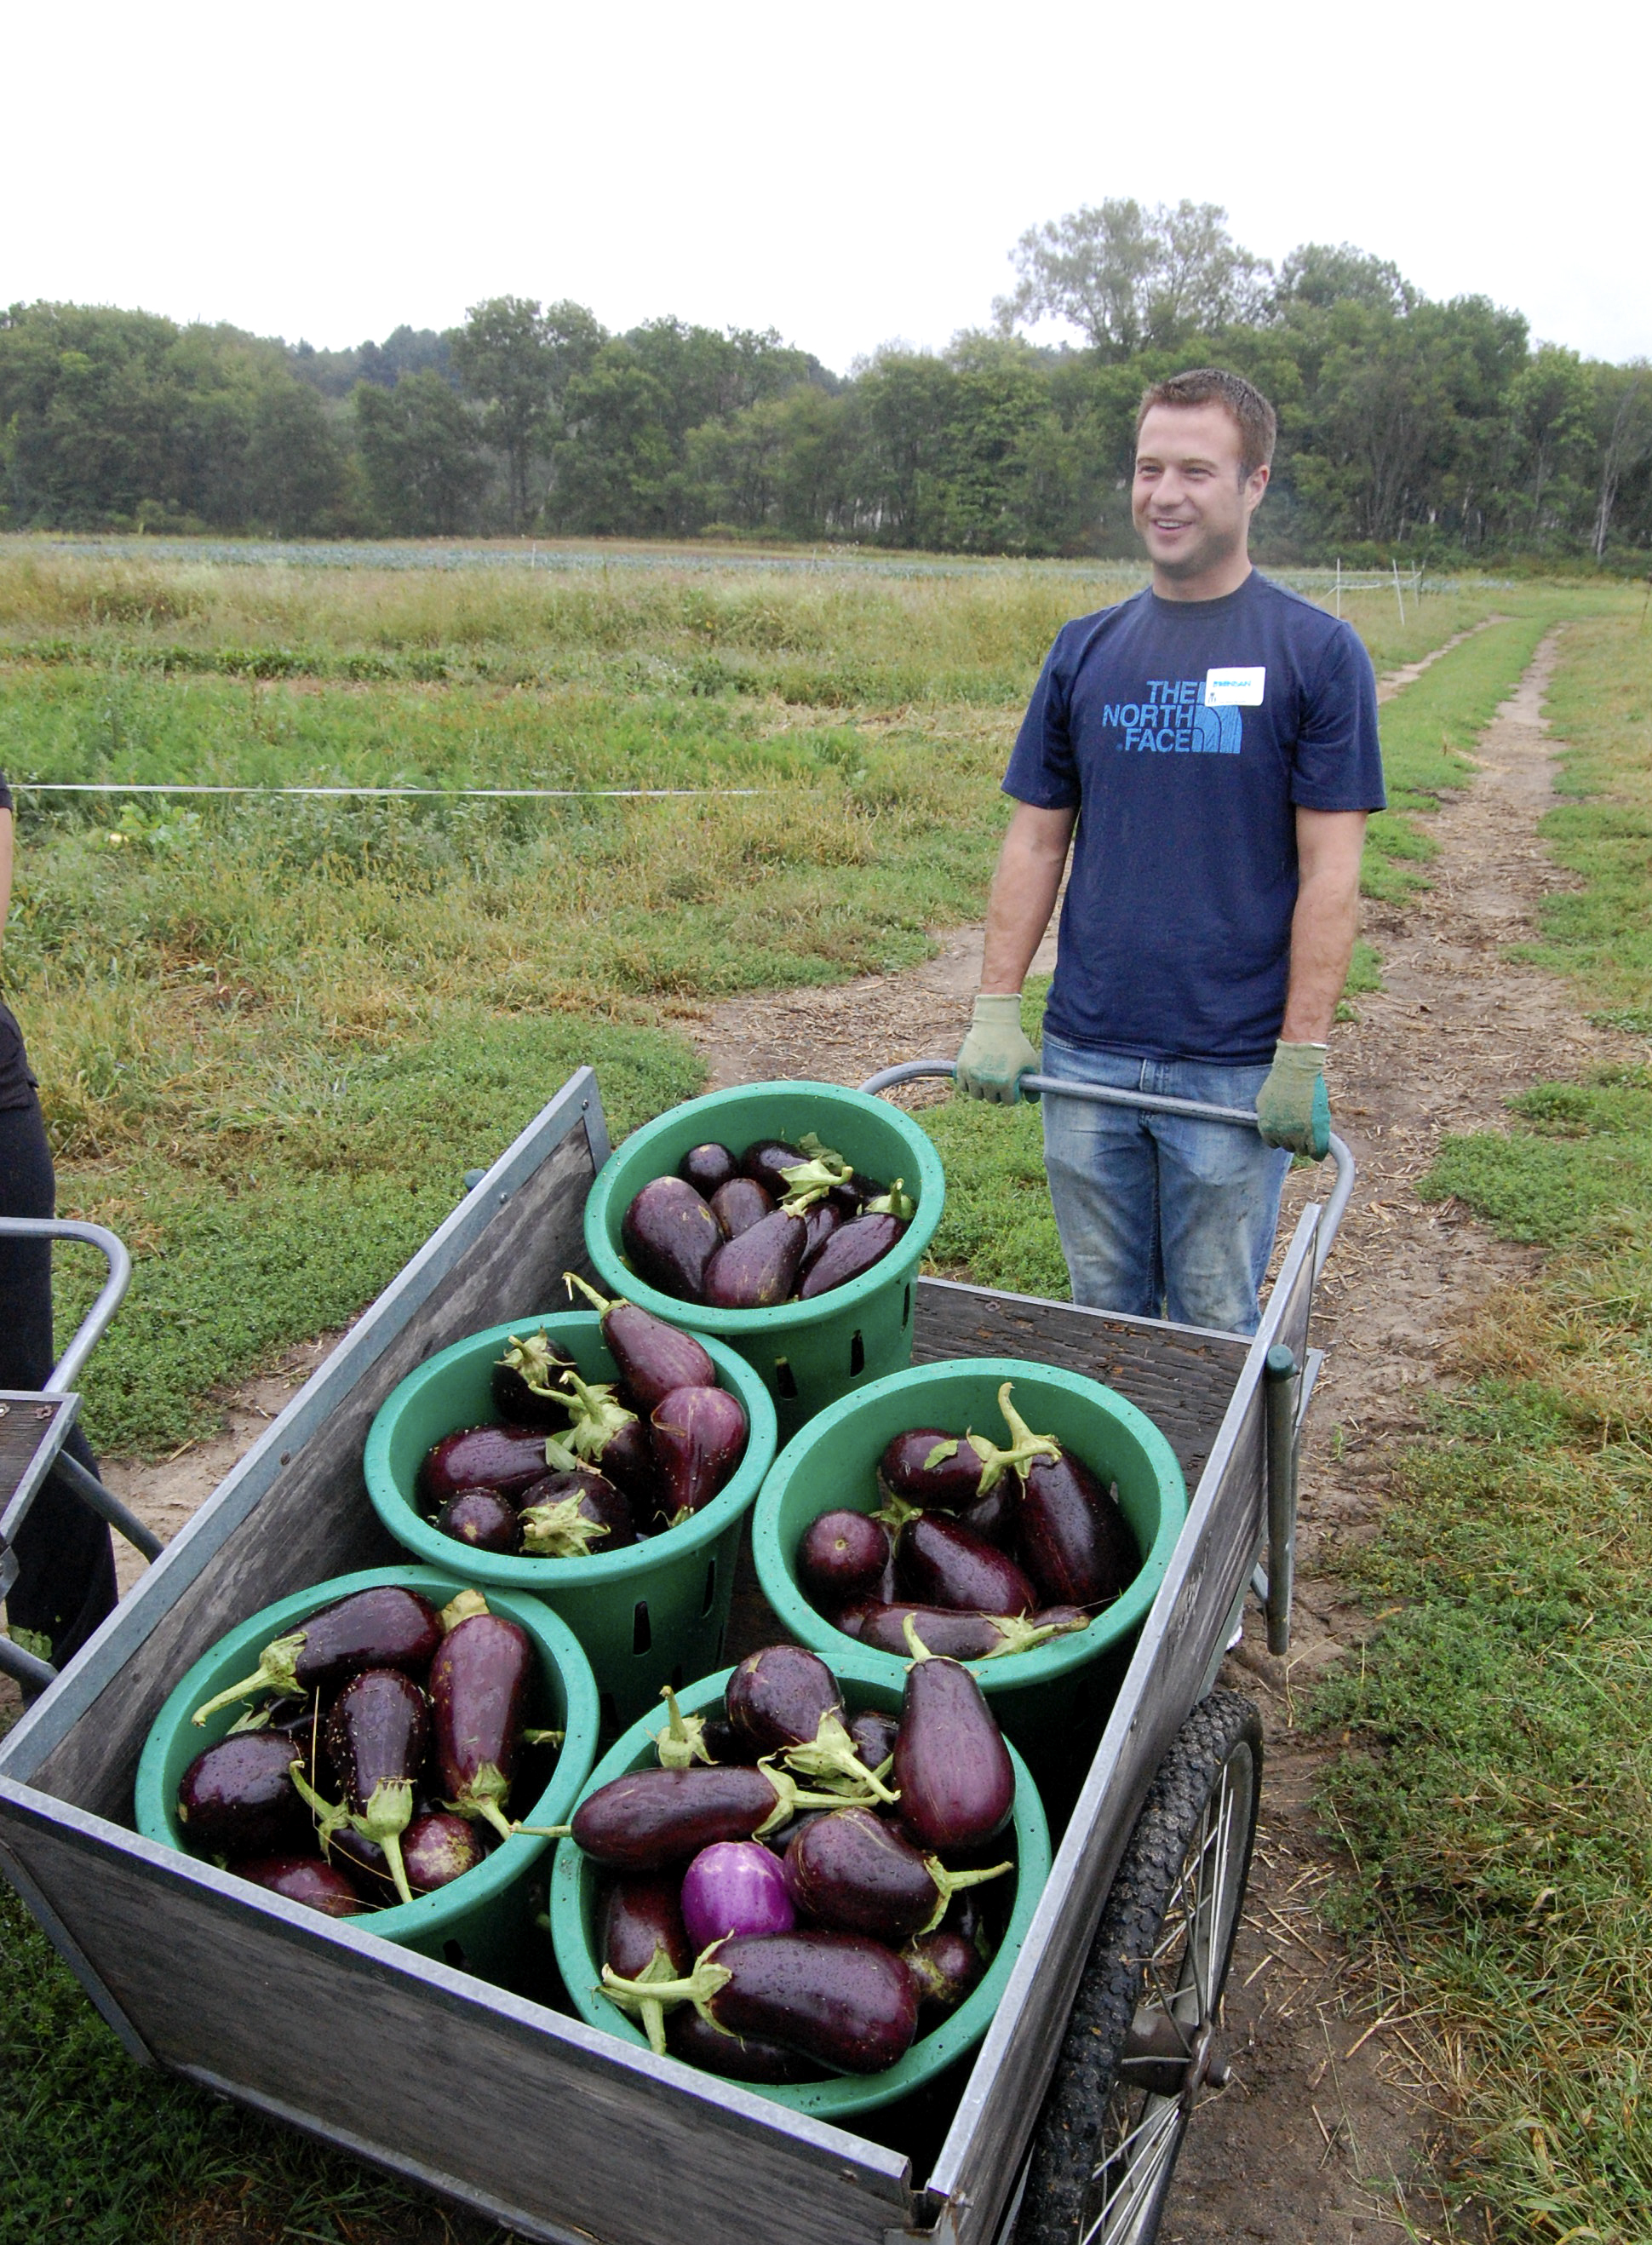 Brendan Griffin, City Table & City Bar Manager, works the fields in Lincoln, MA for The Food Project